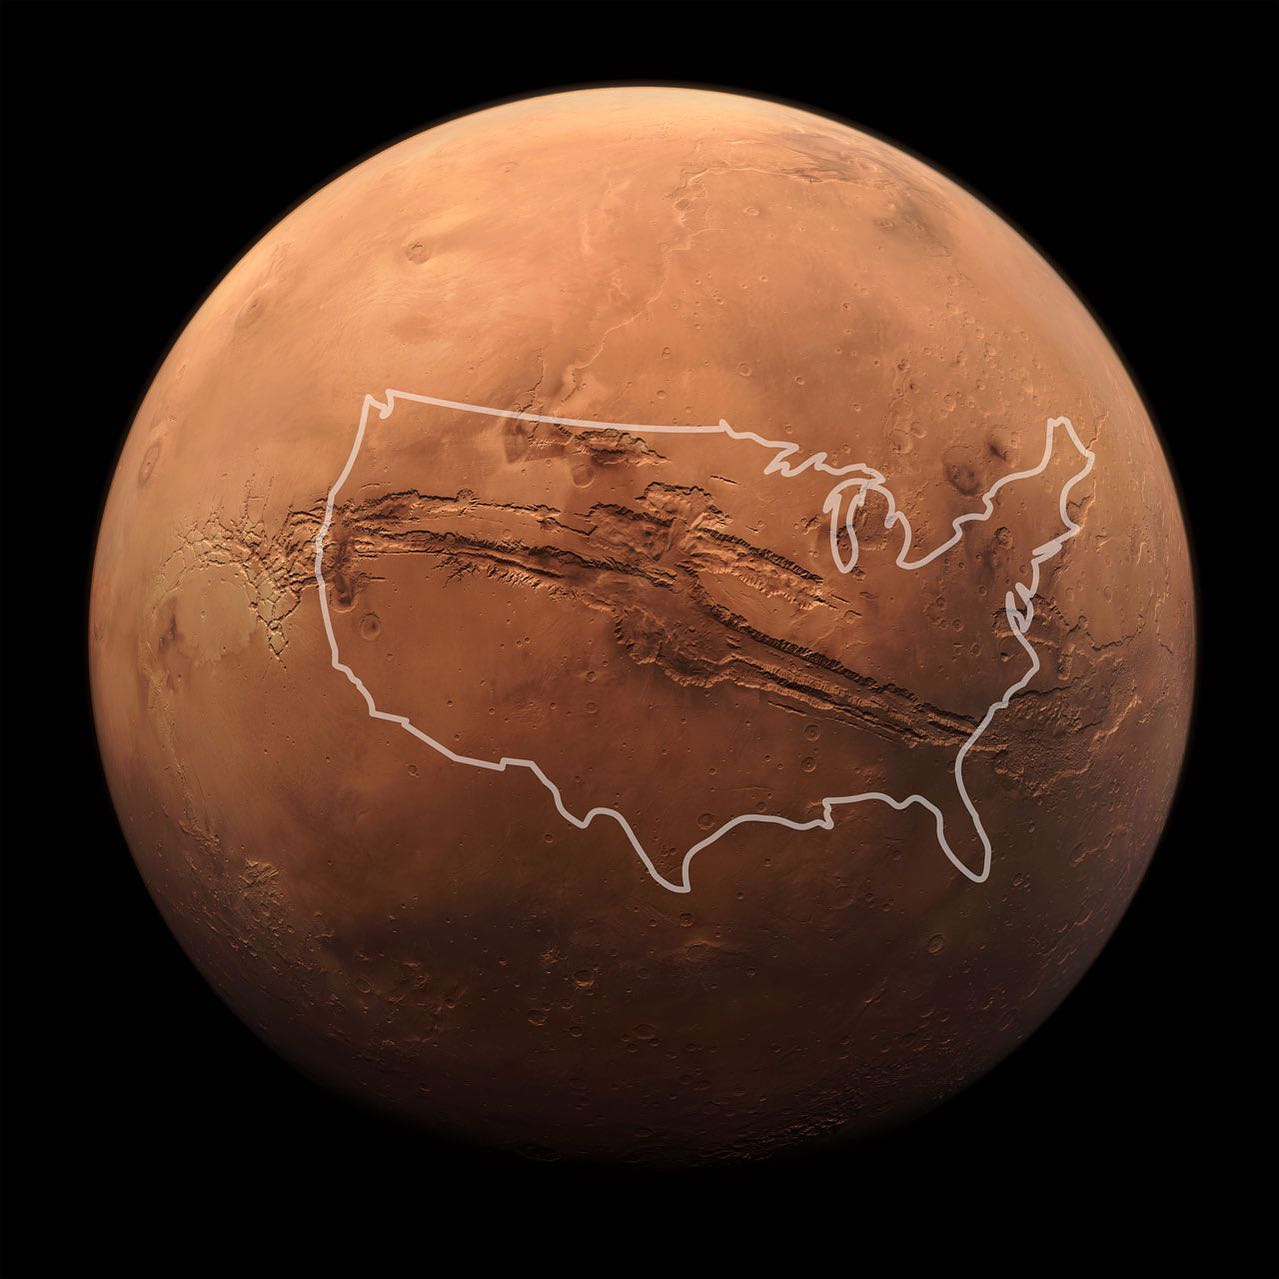 Unpopular opinion alert... I love the mystery of space etc... but maybe we should not be spending trillions of dollars sending people to Mars right now?  How about we save planet earth first... then go to Mars?  Just an idea.